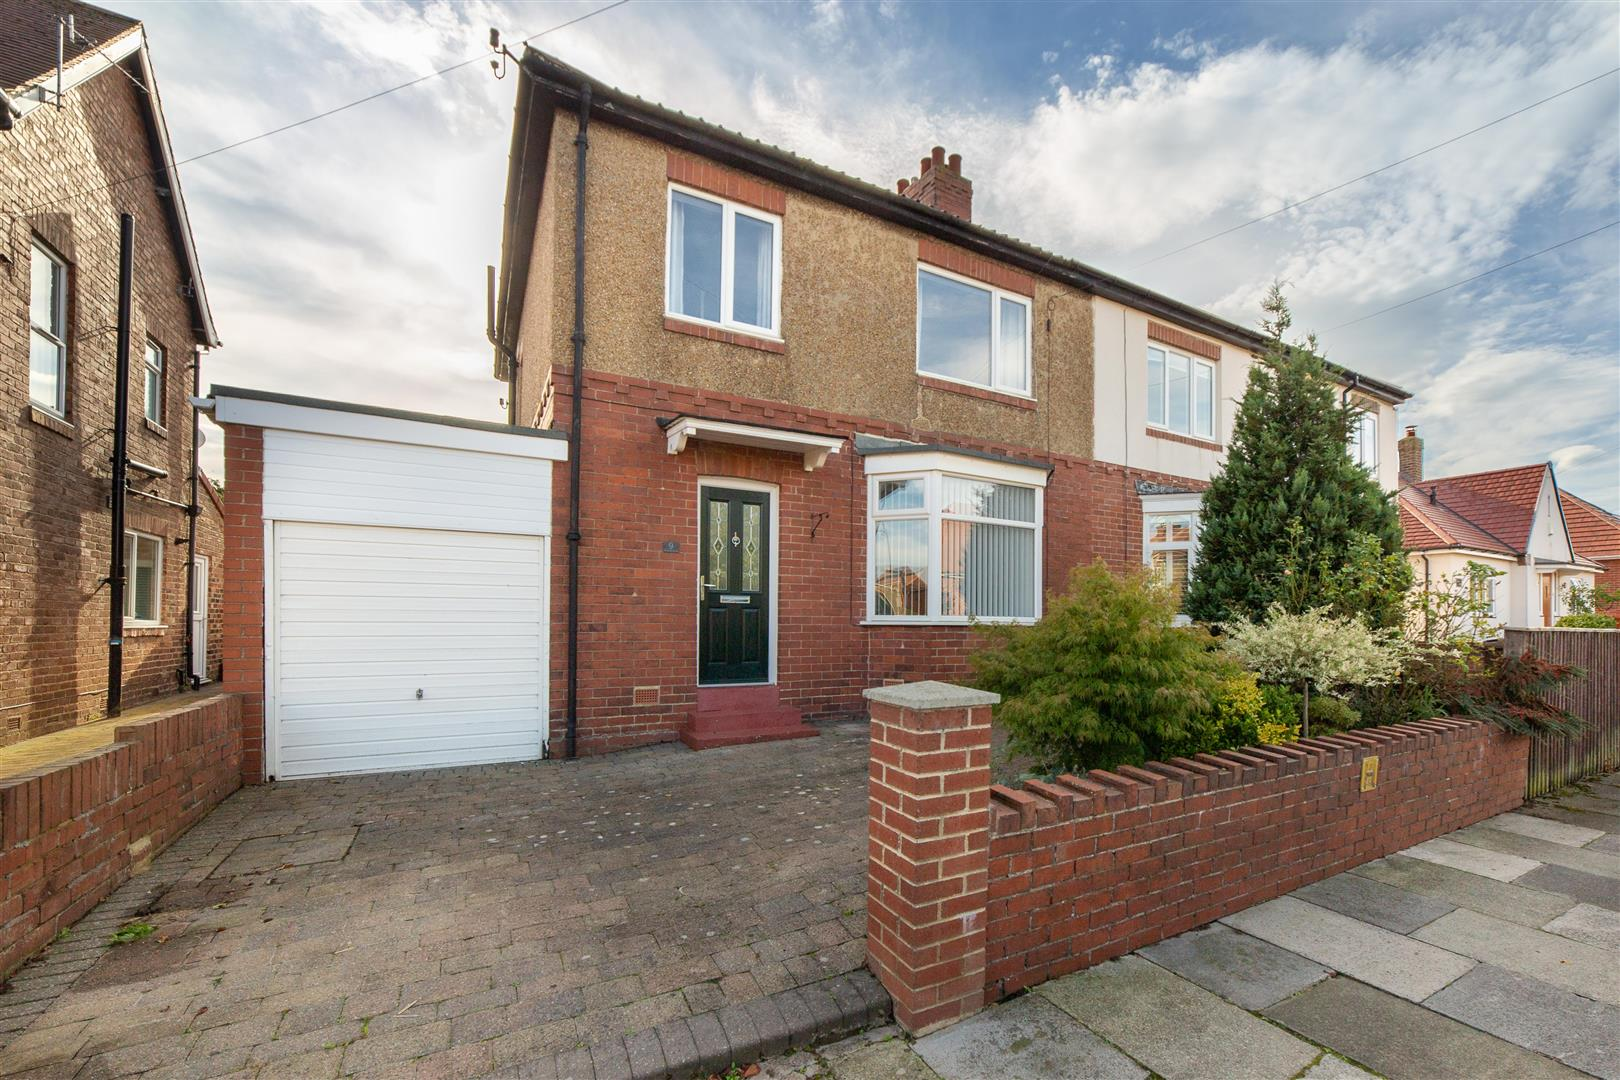 3 bed semi-detached house for sale in Pinewood Avenue, Newcastle Upon Tyne, NE13